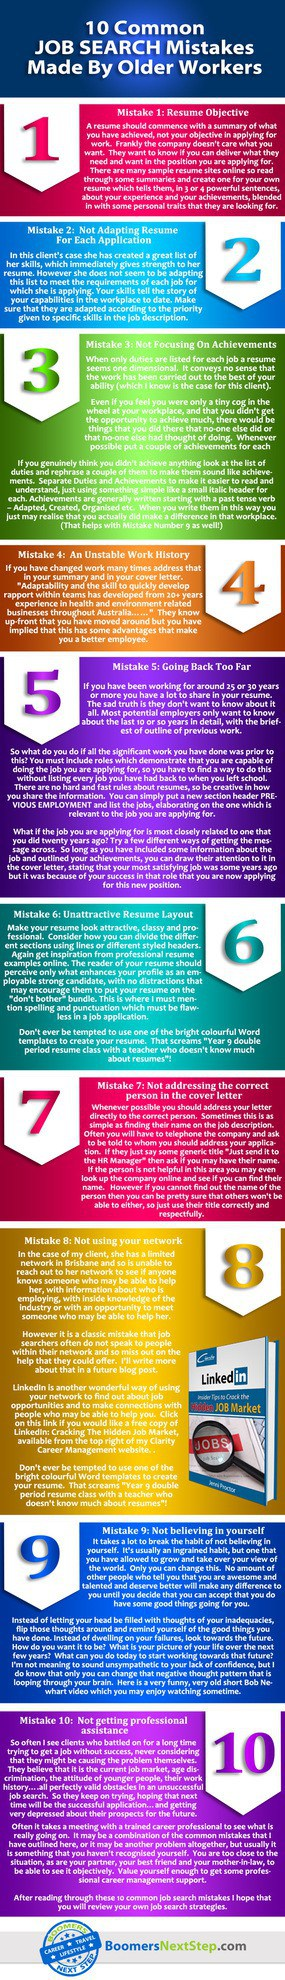 Effective Baby Boomer Resume Tips - Workers over 50 Career Tips